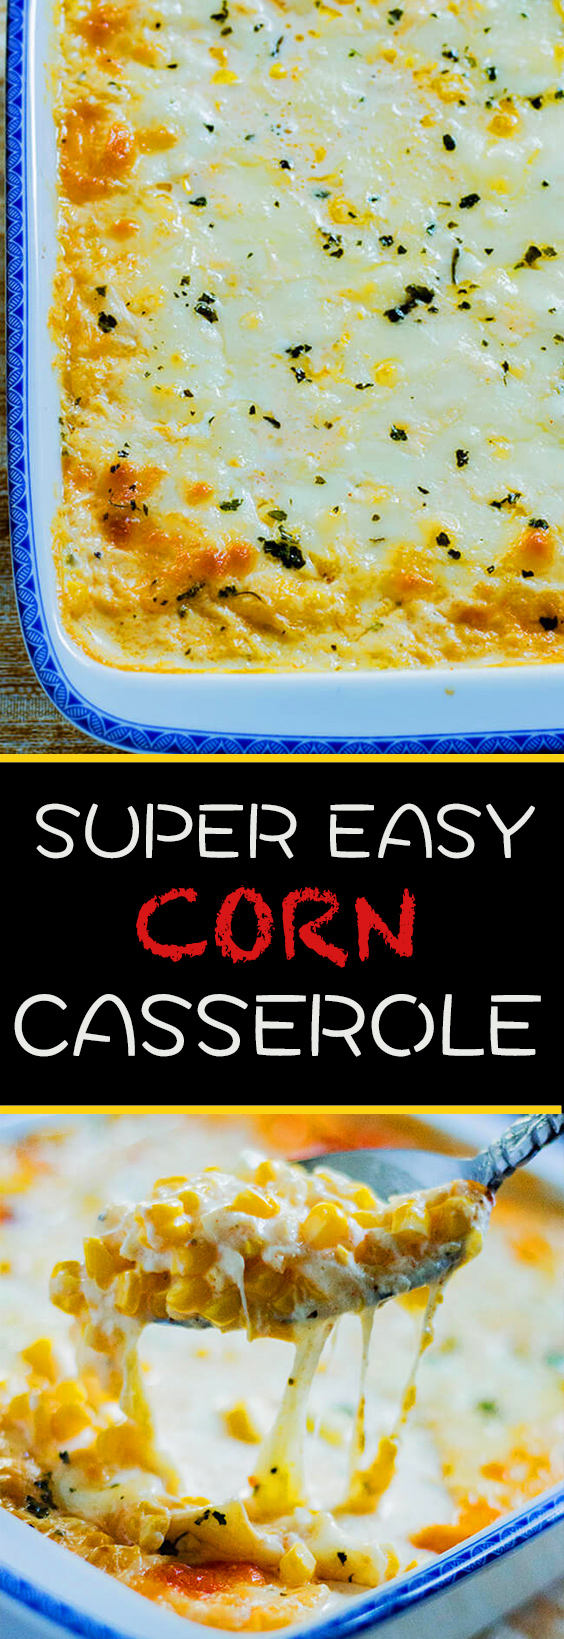 This 4 Ingredient Corn Casserole recipe is so good you'll want to scrape the dish clean to get every last bit. It has fresh corn with cream & tangy cheese.